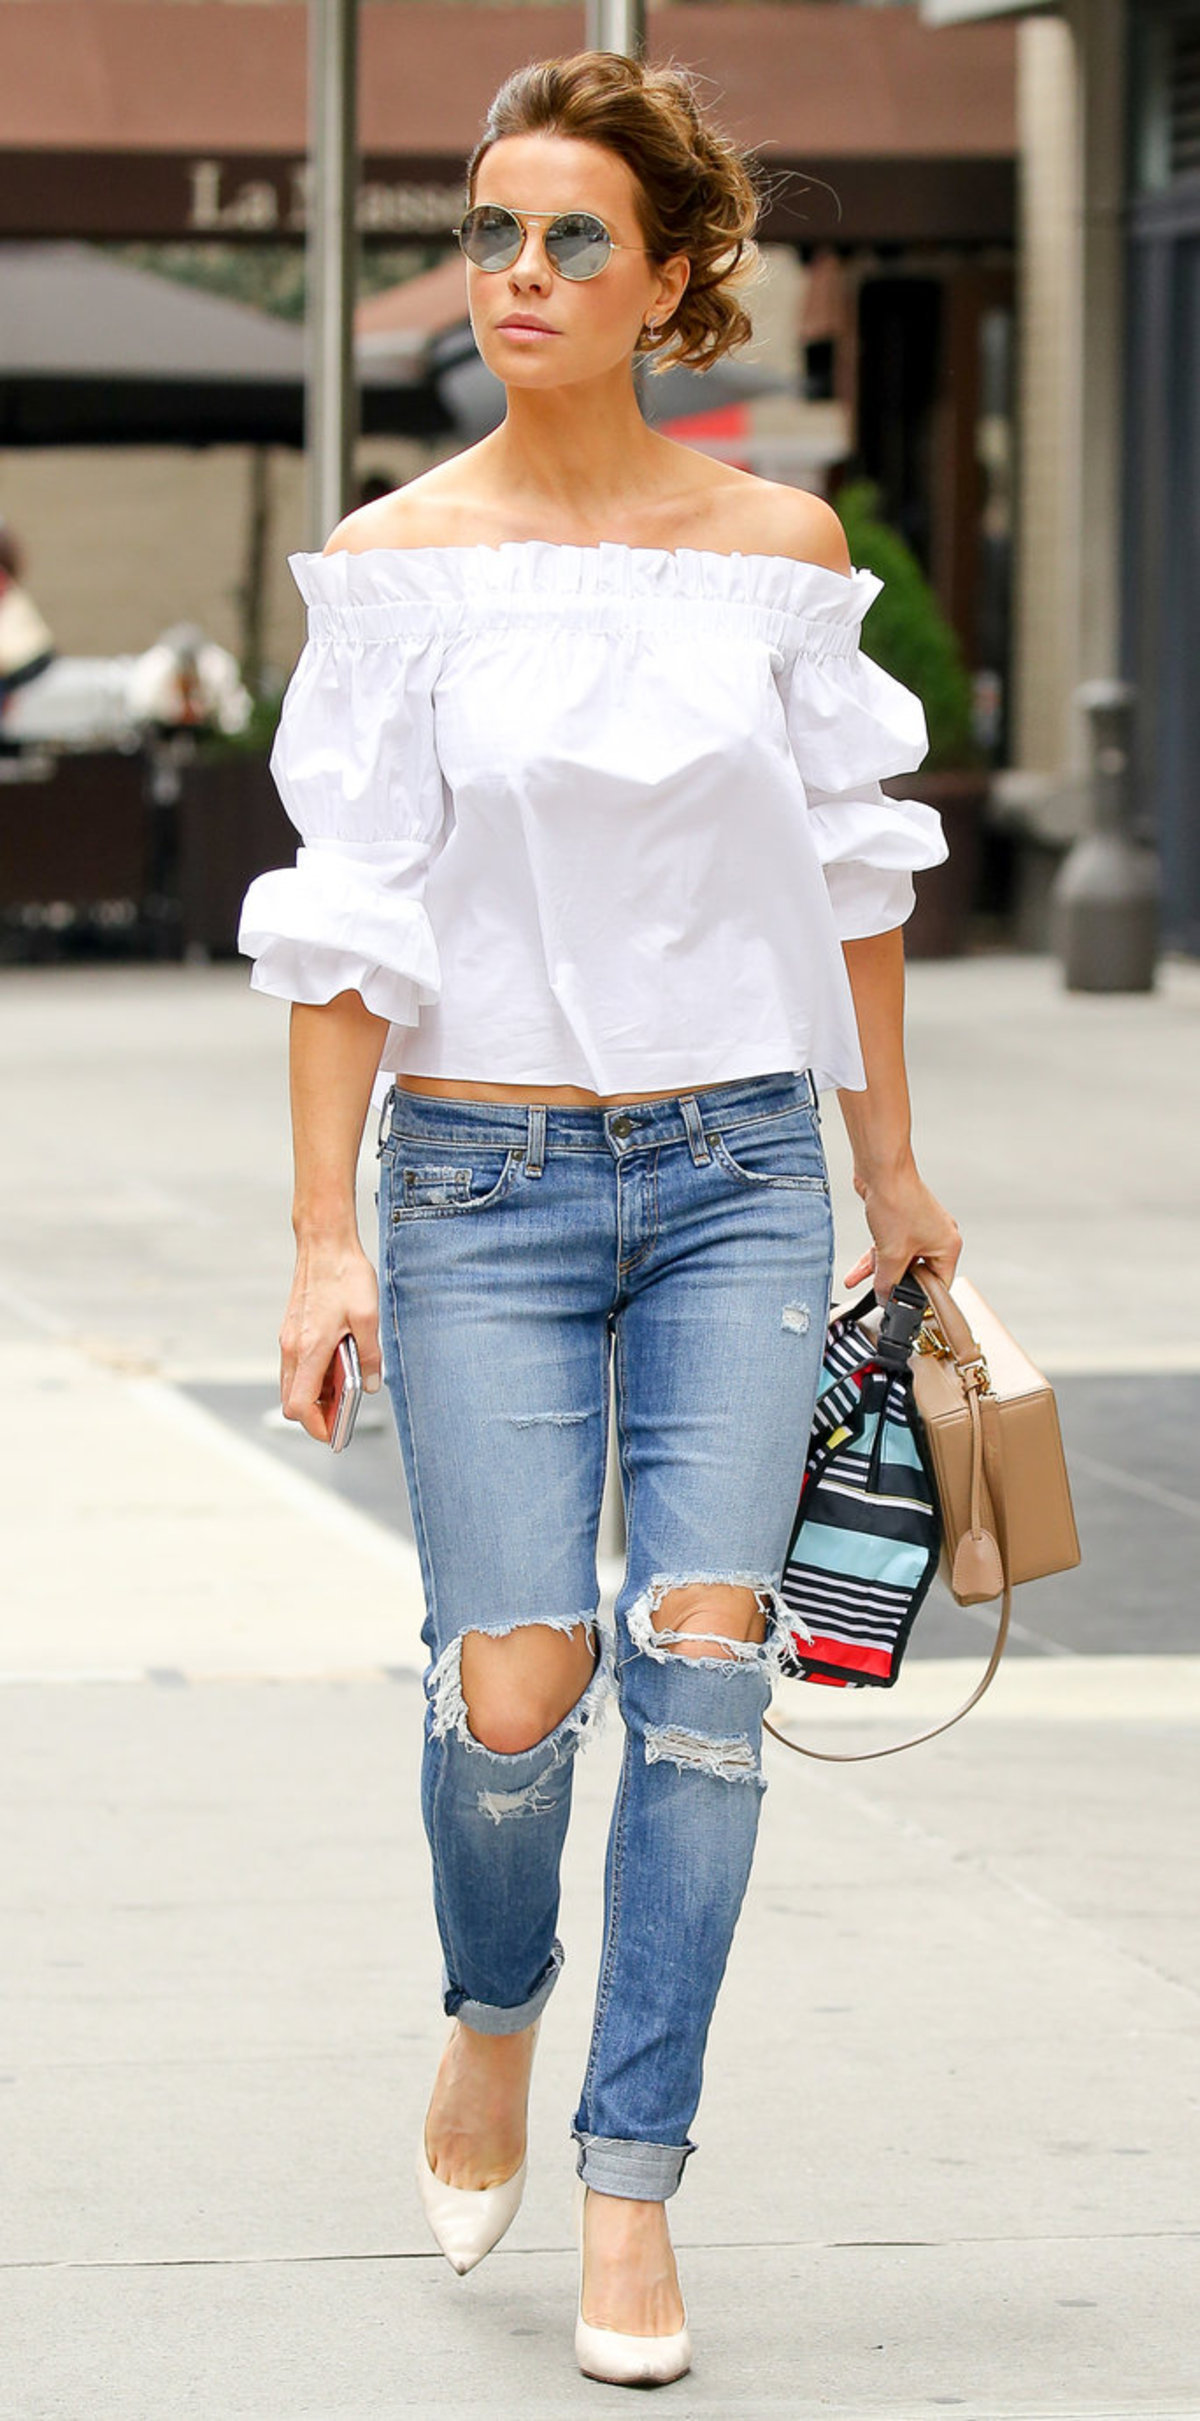 EXCLUSIVE: Kate Beckinsale steps out wearing ripped jeans a long sleeve off shoulder top, kate was heading to the CRUCIBLE Broadway play with her mother Judy Loe and daughter Lily Mo Sheen in New York City, New York. Pictured: Kate Beckinsale Ref: SPL1315603 100716 EXCLUSIVE Picture by: Felipe Ramales / Splash News Splash News and Pictures Los Angeles:310-821-2666 New York:212-619-2666 London:870-934-2666 photodesk@splashnews.com